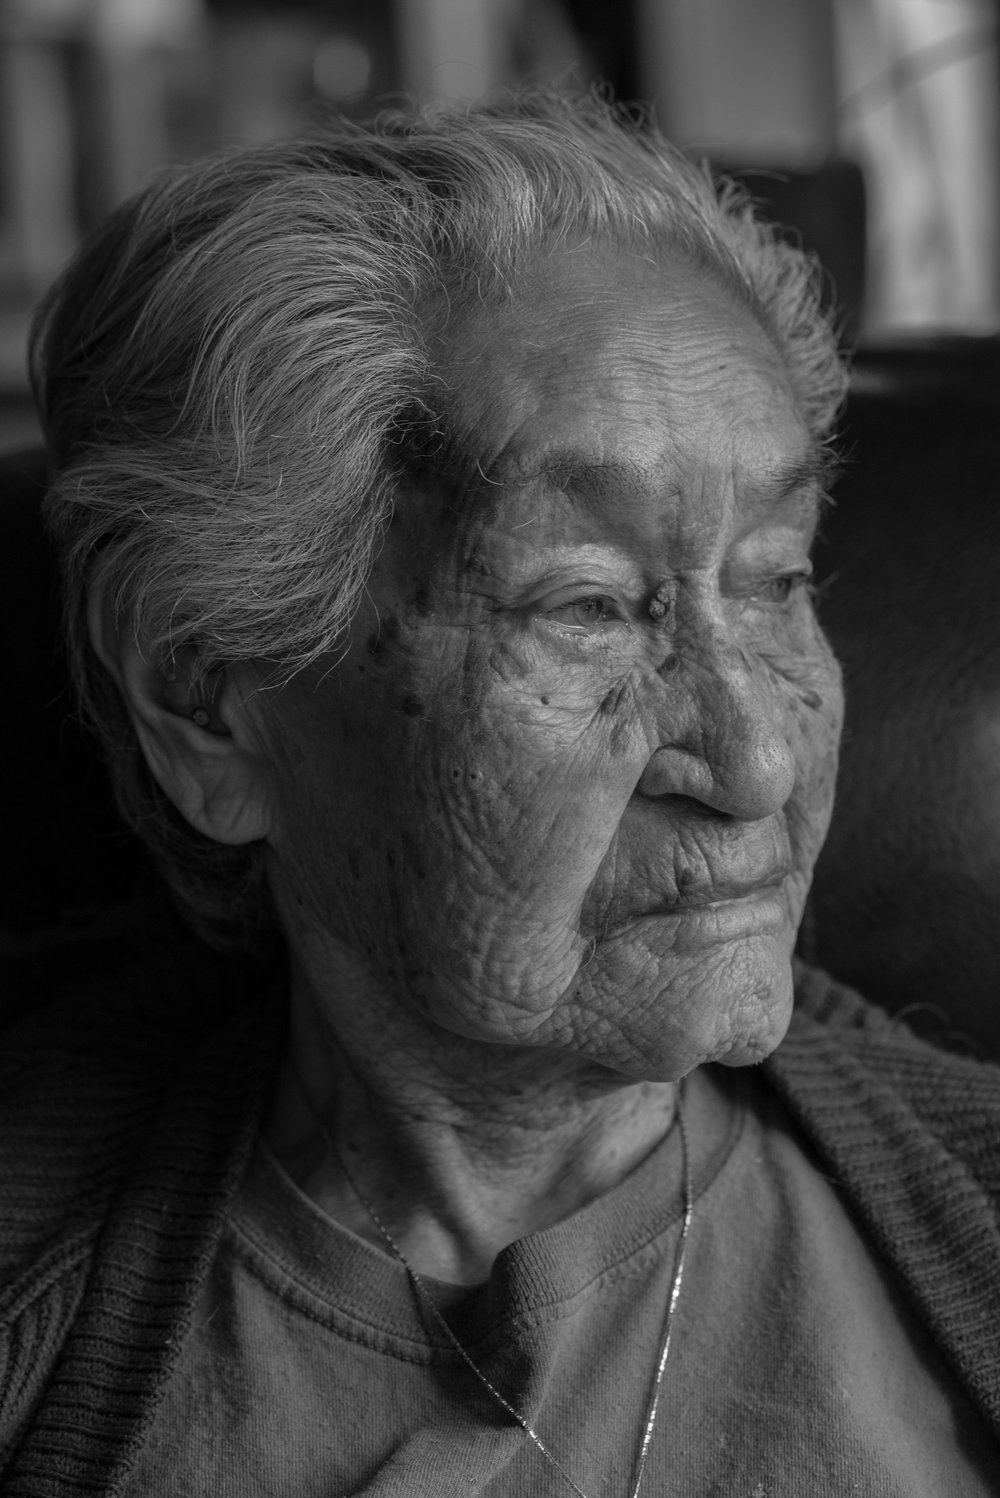 "Saqᵂistl, Hilda Hanson, Elder, Kyuquot/Cheklesaht Nation:   ""We had big clam beaches in Kyuquot, Actis. It was the best clam beach that ever was. All kinds. Big clams, little clams. It was all there, the littlenecks. We used to just go down the beach, dig what we want to eat, we just have to take a can. There was so many. And all of the people used to dig there.  They didn't go anywhere else. No more. No more clams. That's whenk̕wak̕aƛ  [sea otter] came around. Ate up all the clams. We had to go somewhere else."""